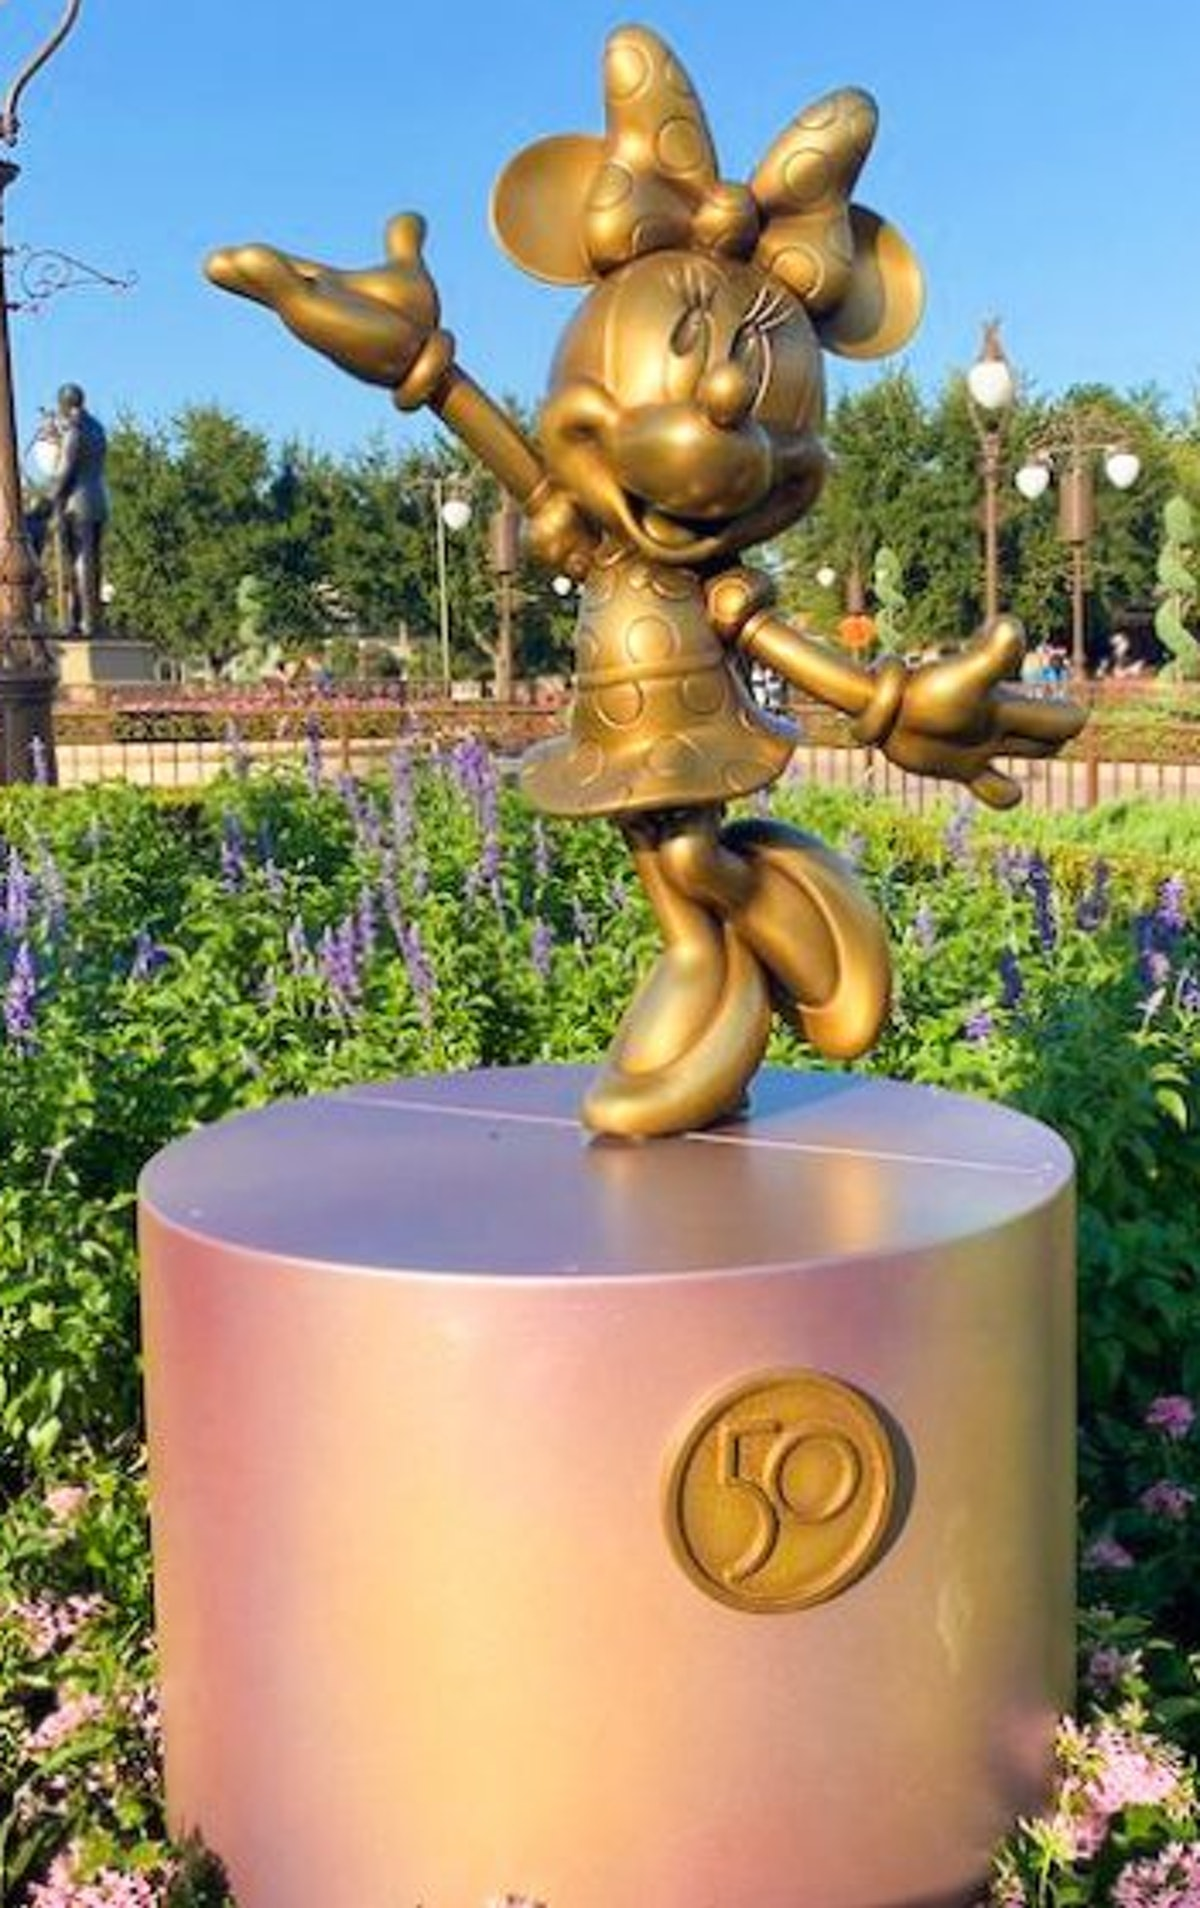 Disney's Gold Statues for the 50th anniversary features classic characters like Minnie Mouse.